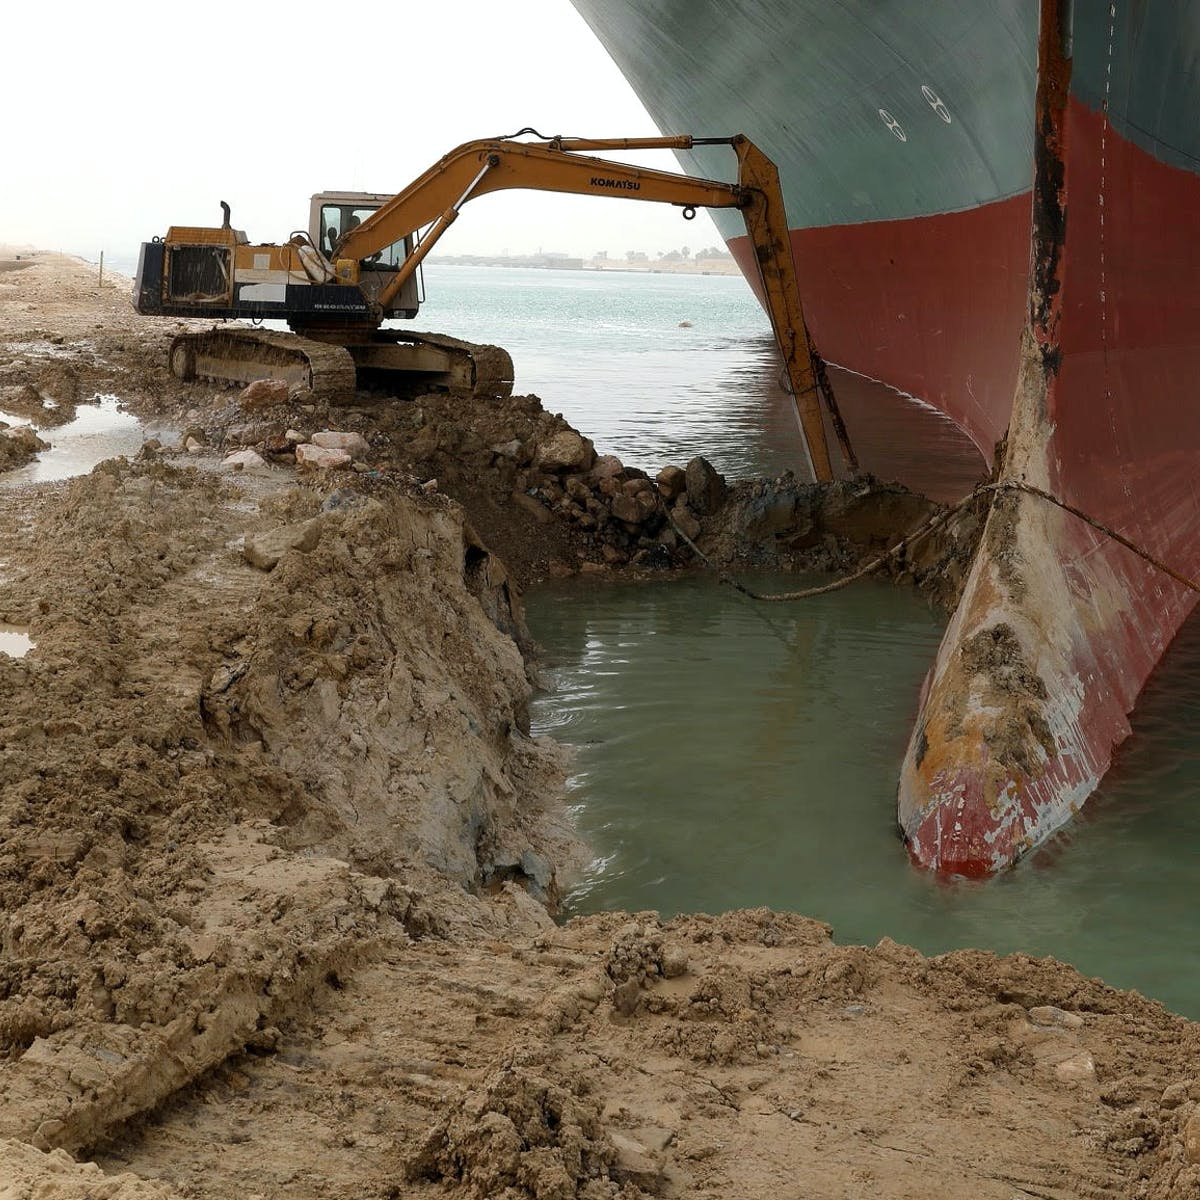 A tractor tries to free the Ever Given ship from the Suez Canal.